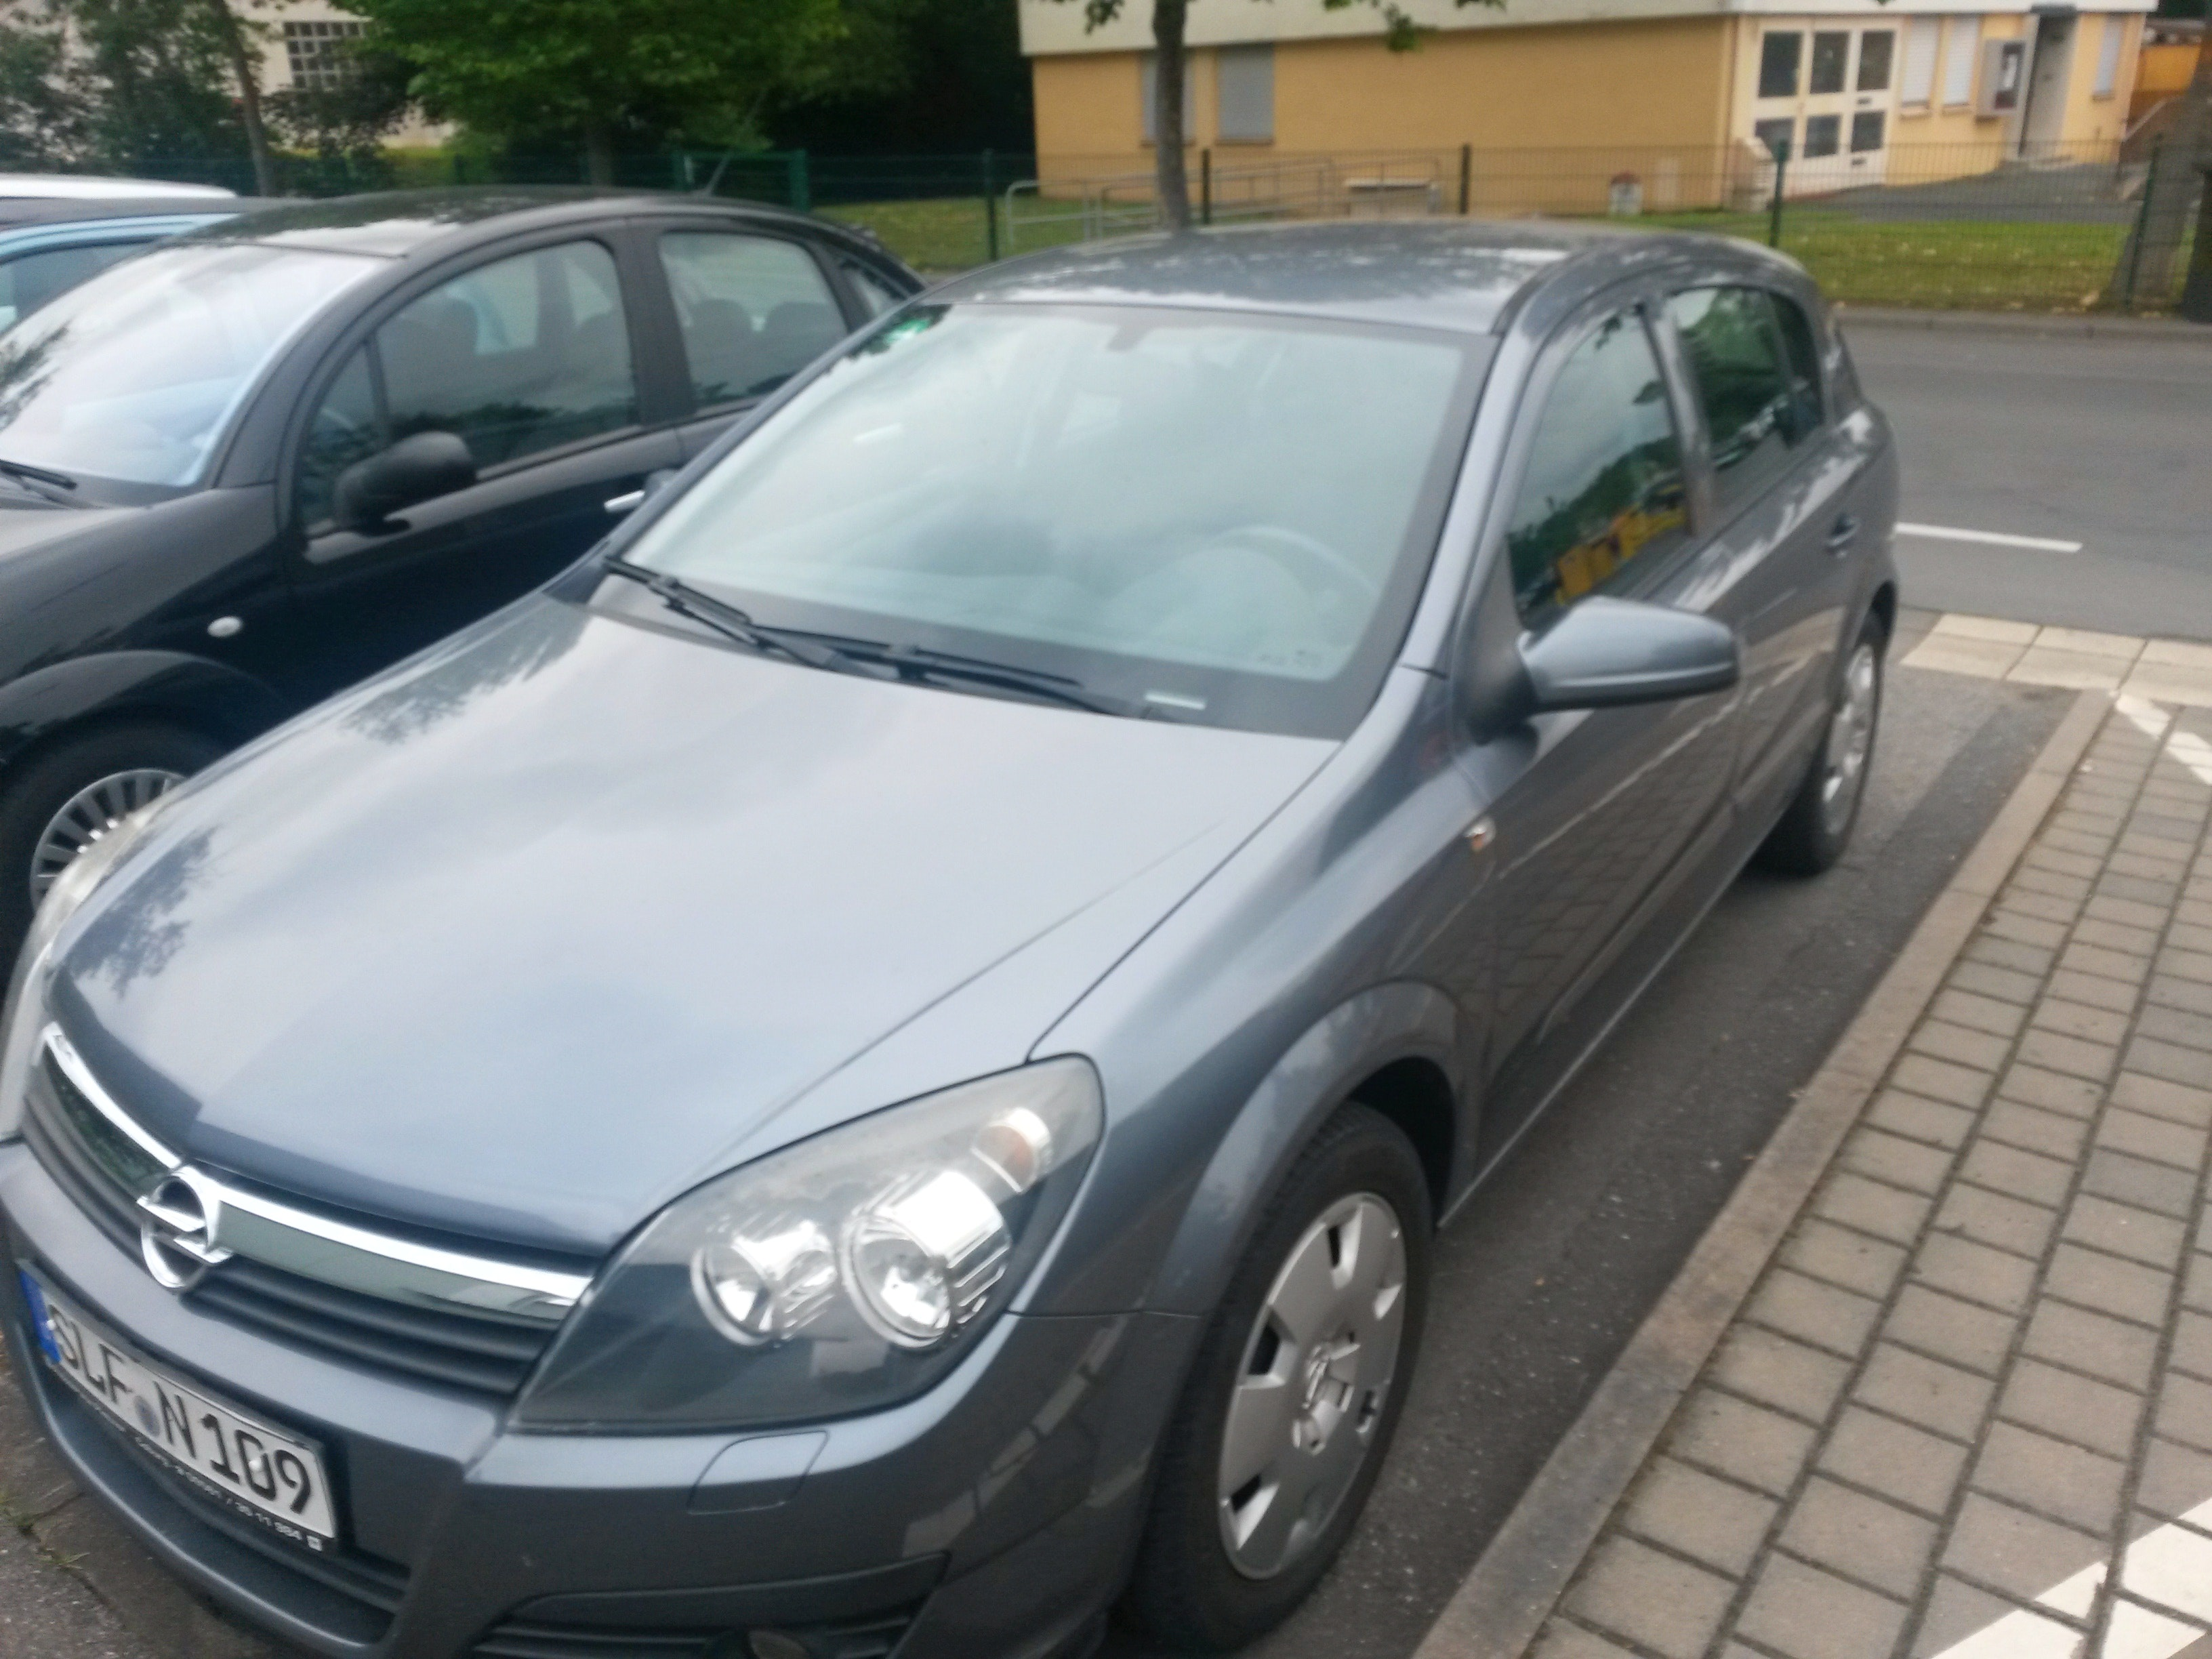 Opel Astra H 1.6 Twinport , 2006